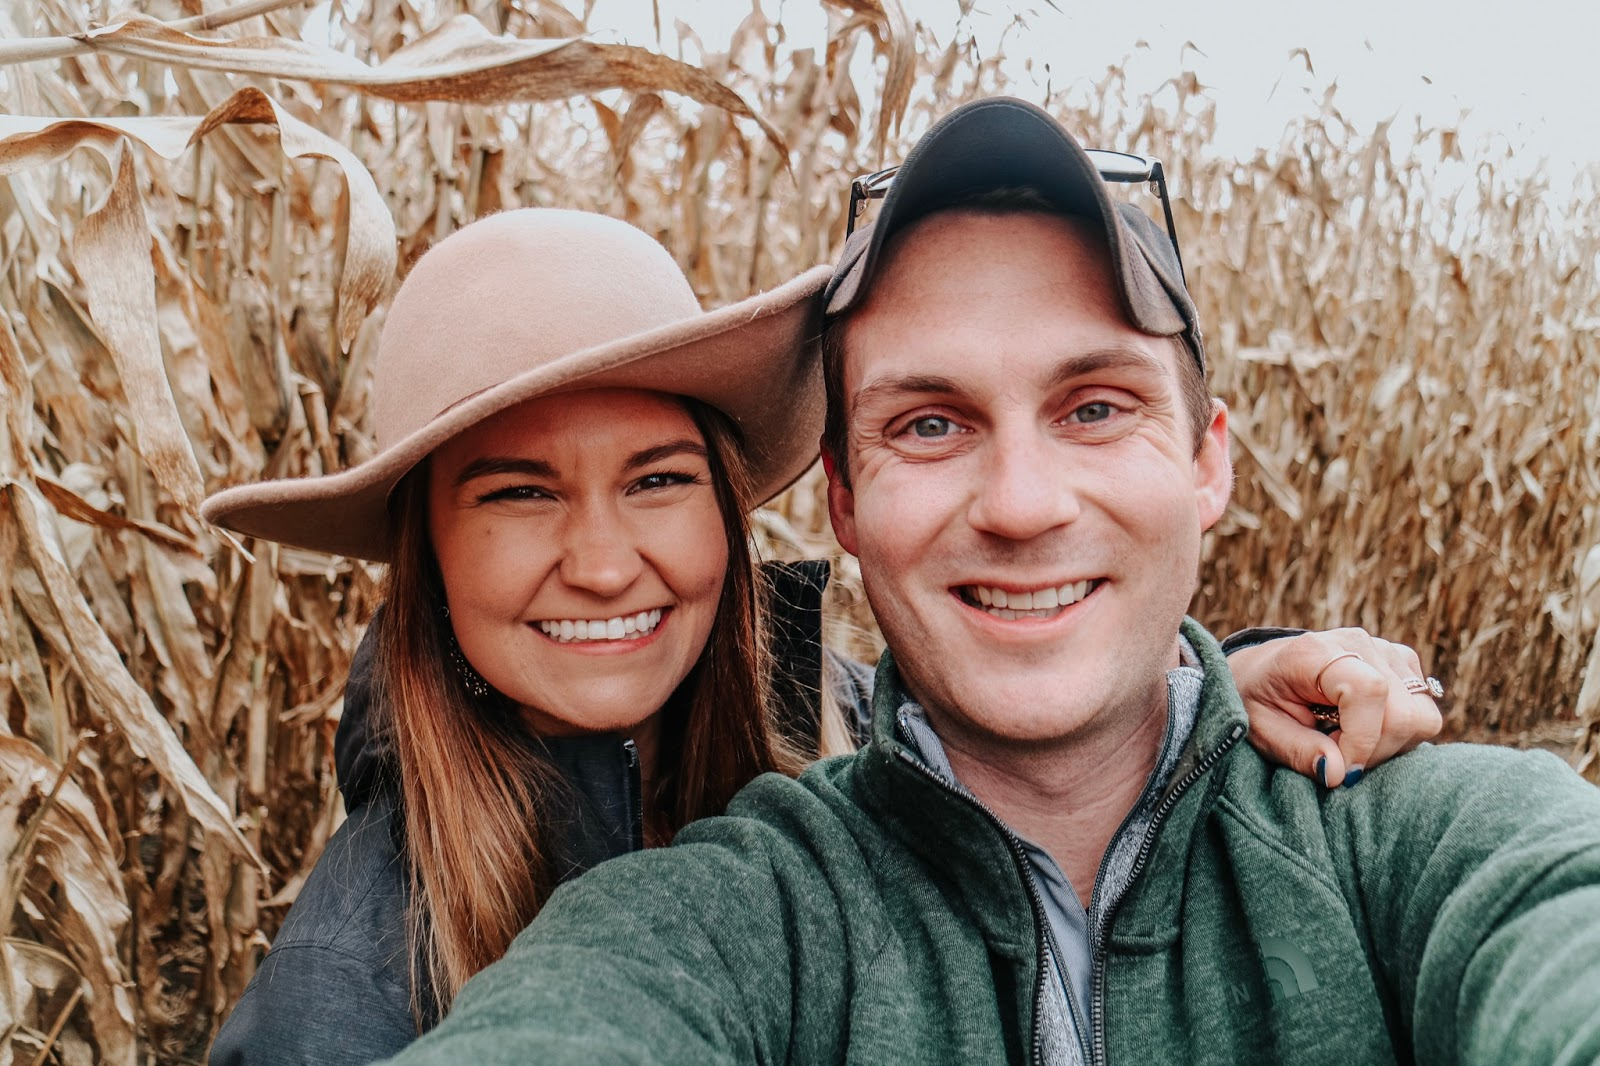 Tampa blogger and her husband in the corn fields at Schuster's Farm in Deerfield, Wisconsin